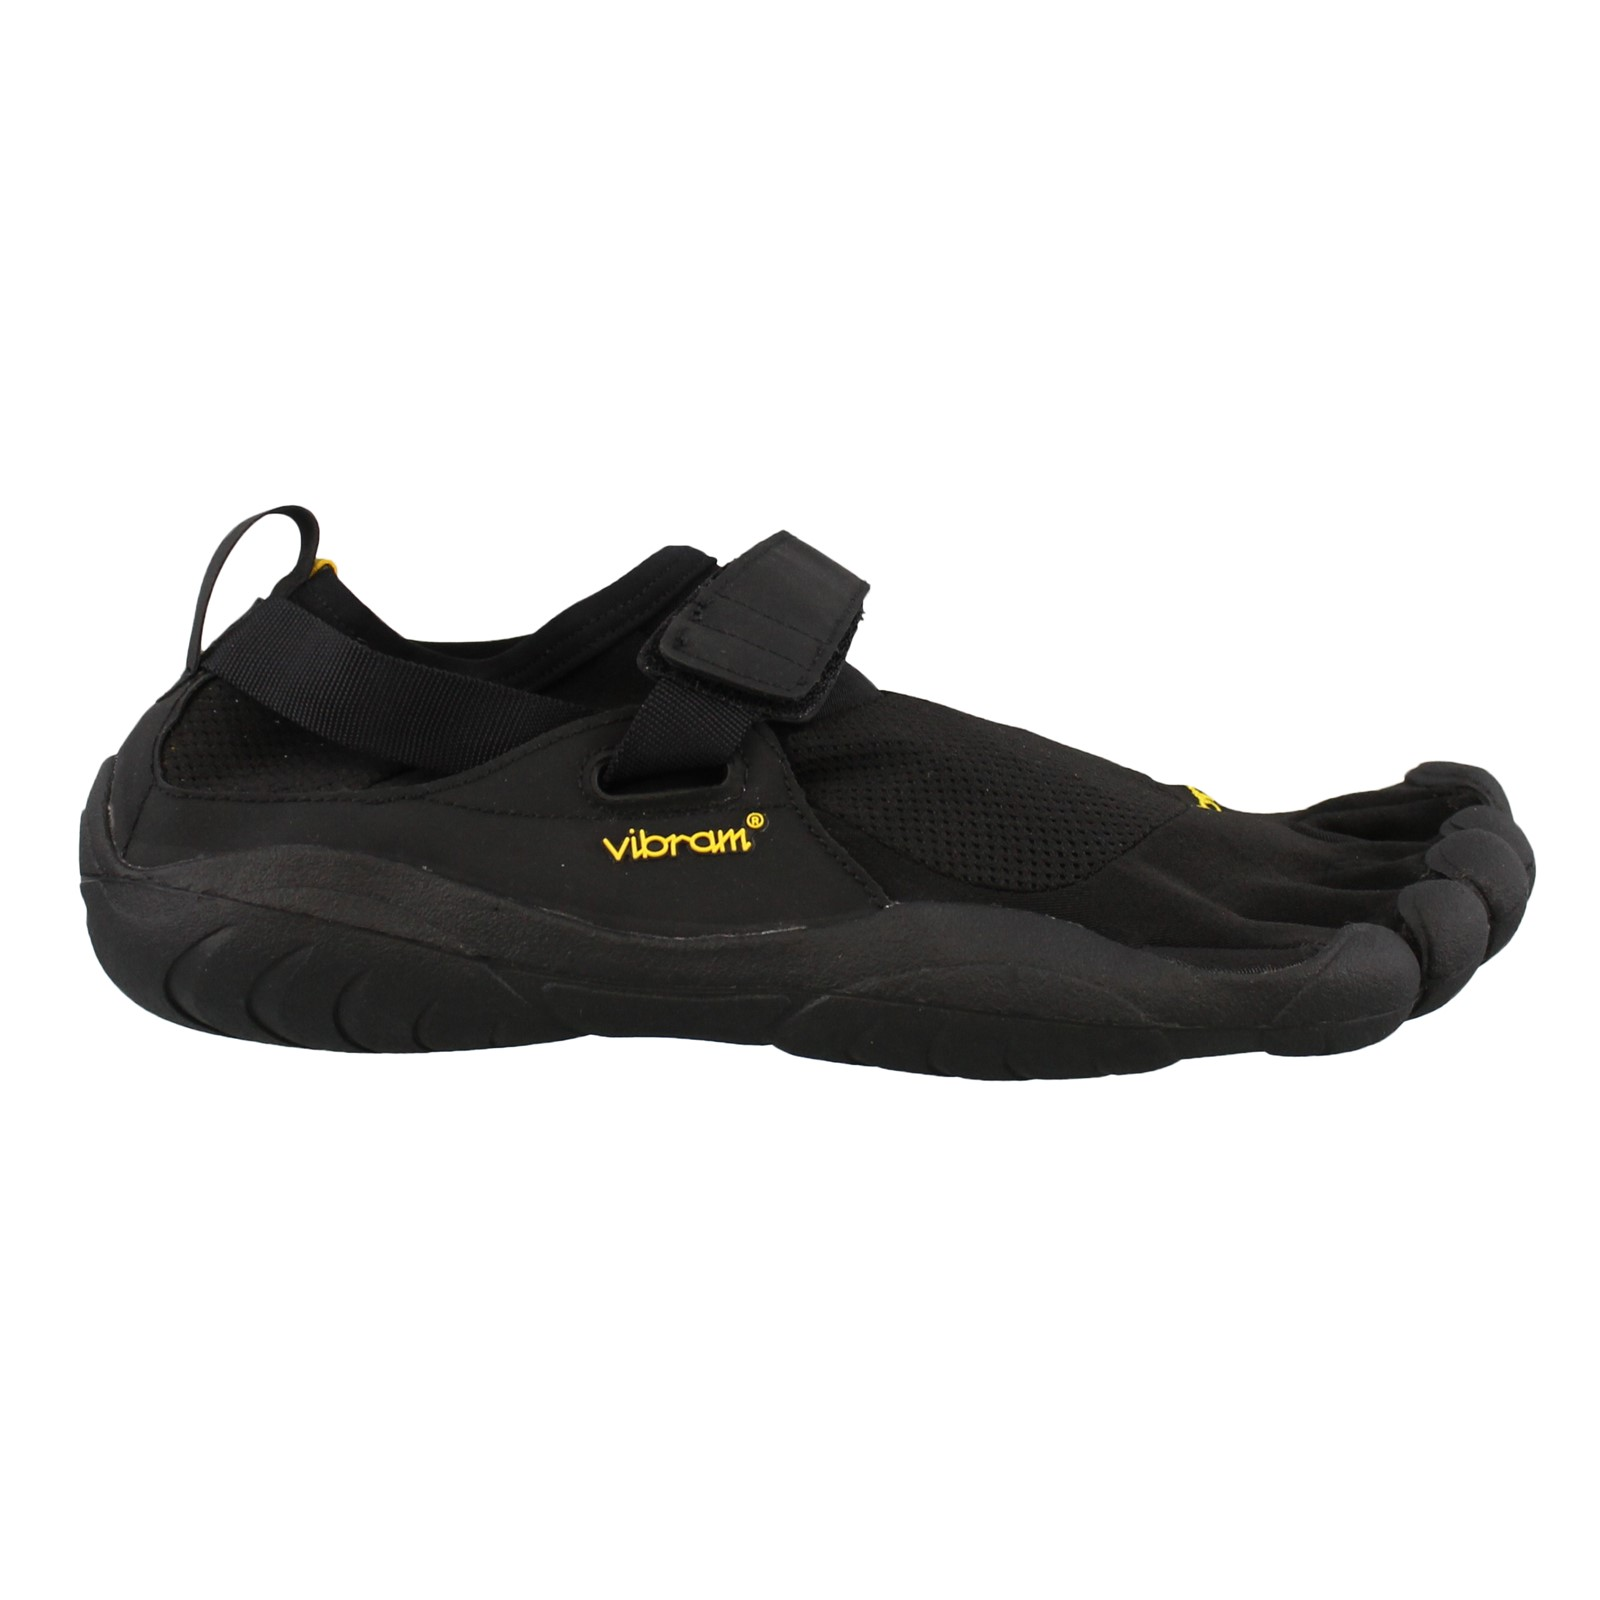 Men's Vibram Five Fingers, KSO EVO Cross training Shoe